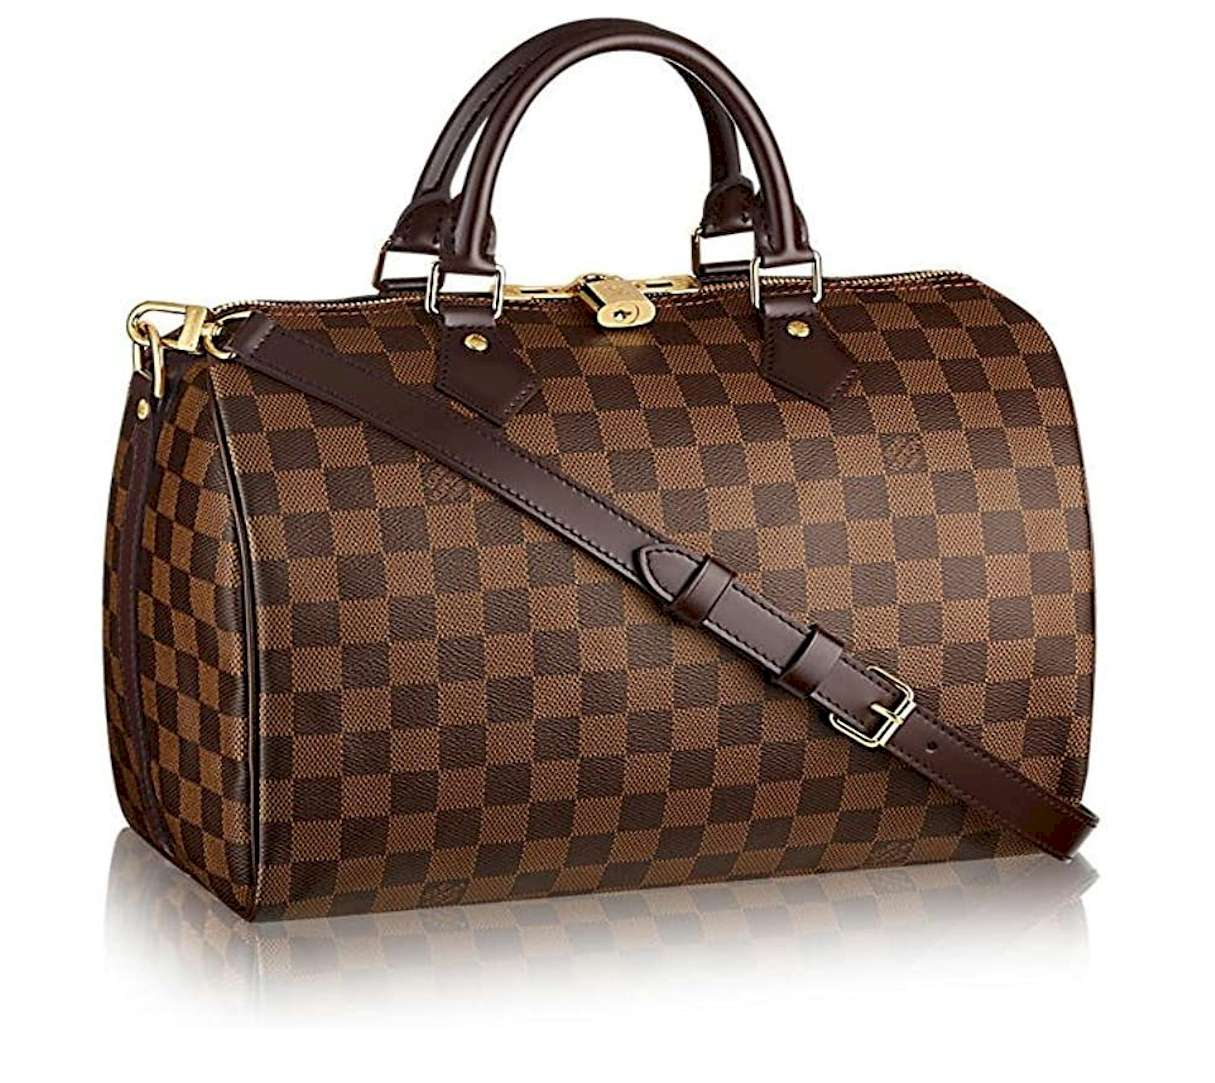 Louis Vuitton Brand - Best Products 2021 on Amazon